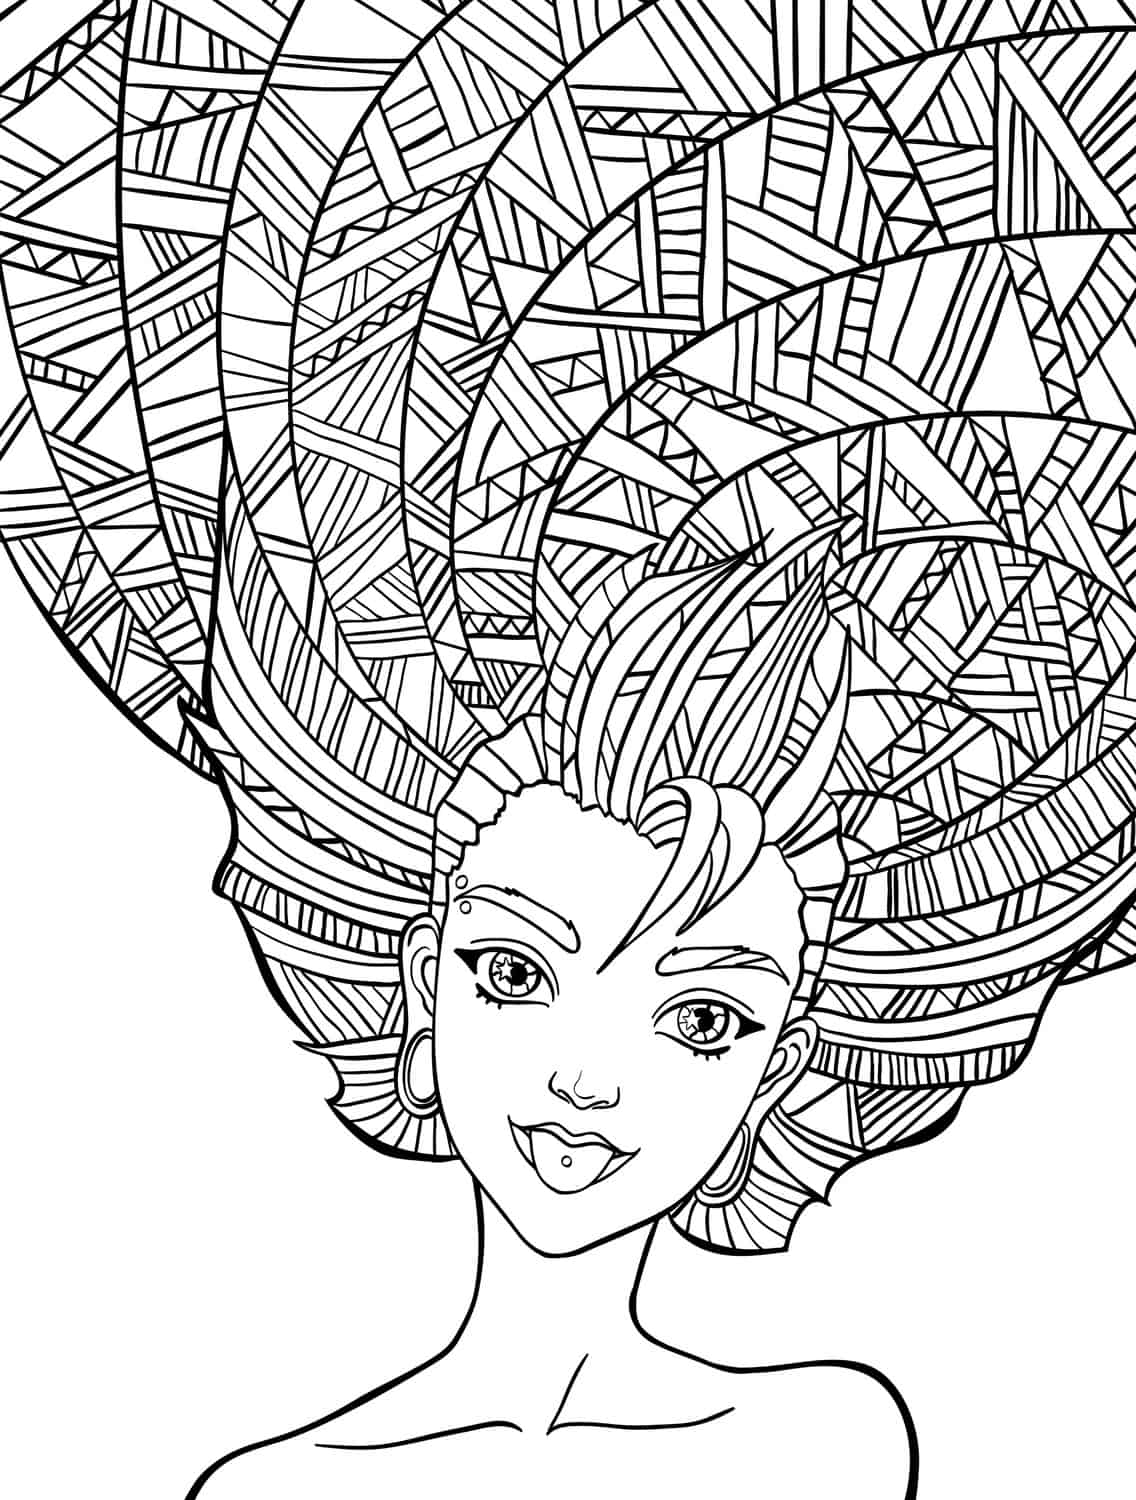 10 Crazy Hair Adult Coloring Pages Page 9 Of 12 Nerdy